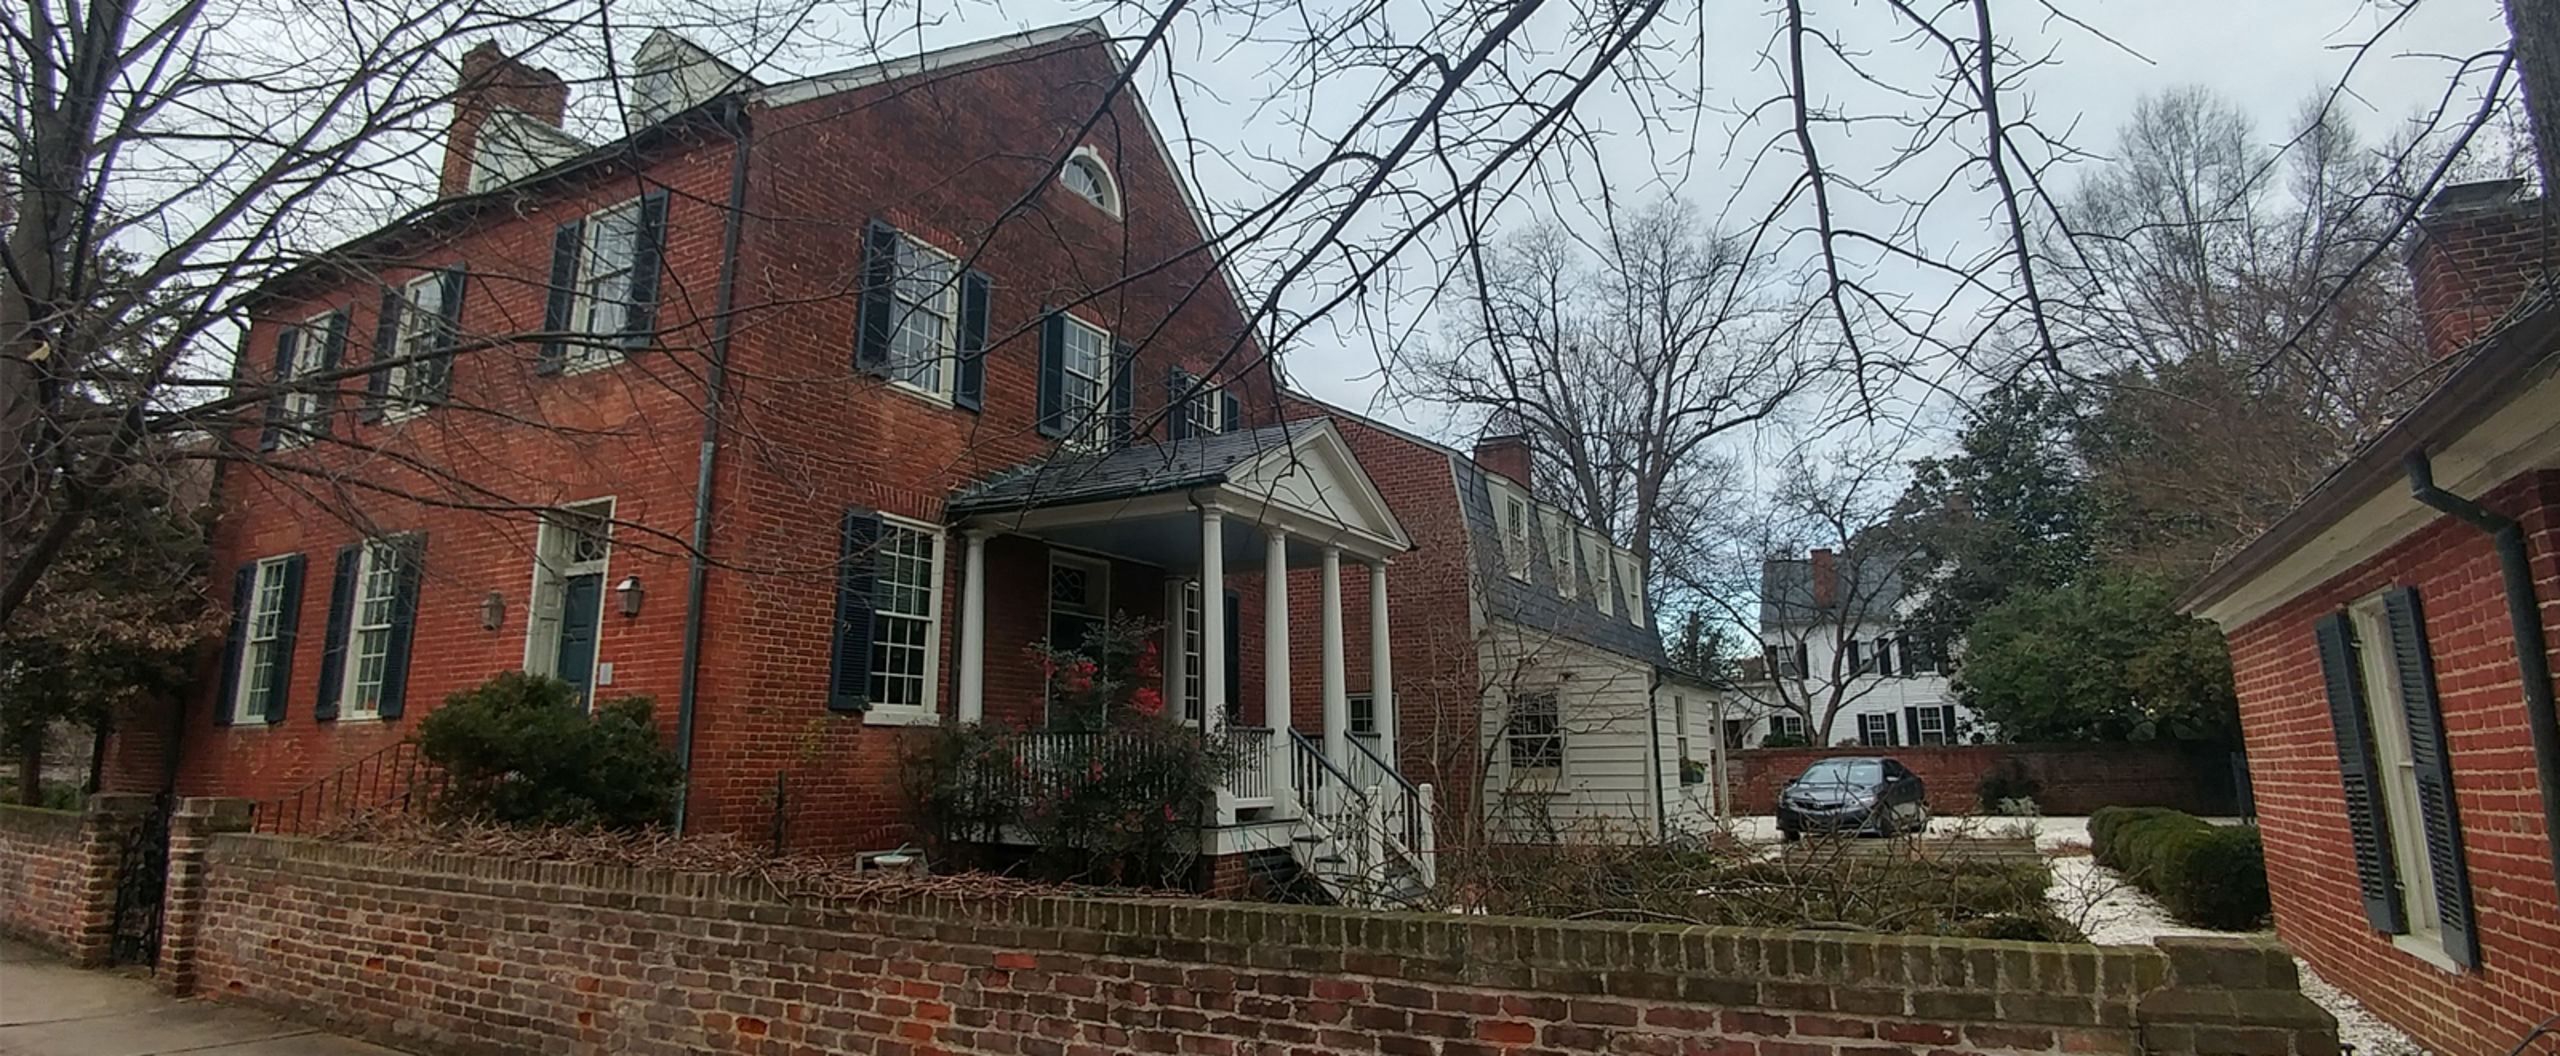 The Doggett House - Listed and sold, one of Fredericksburg's finest.